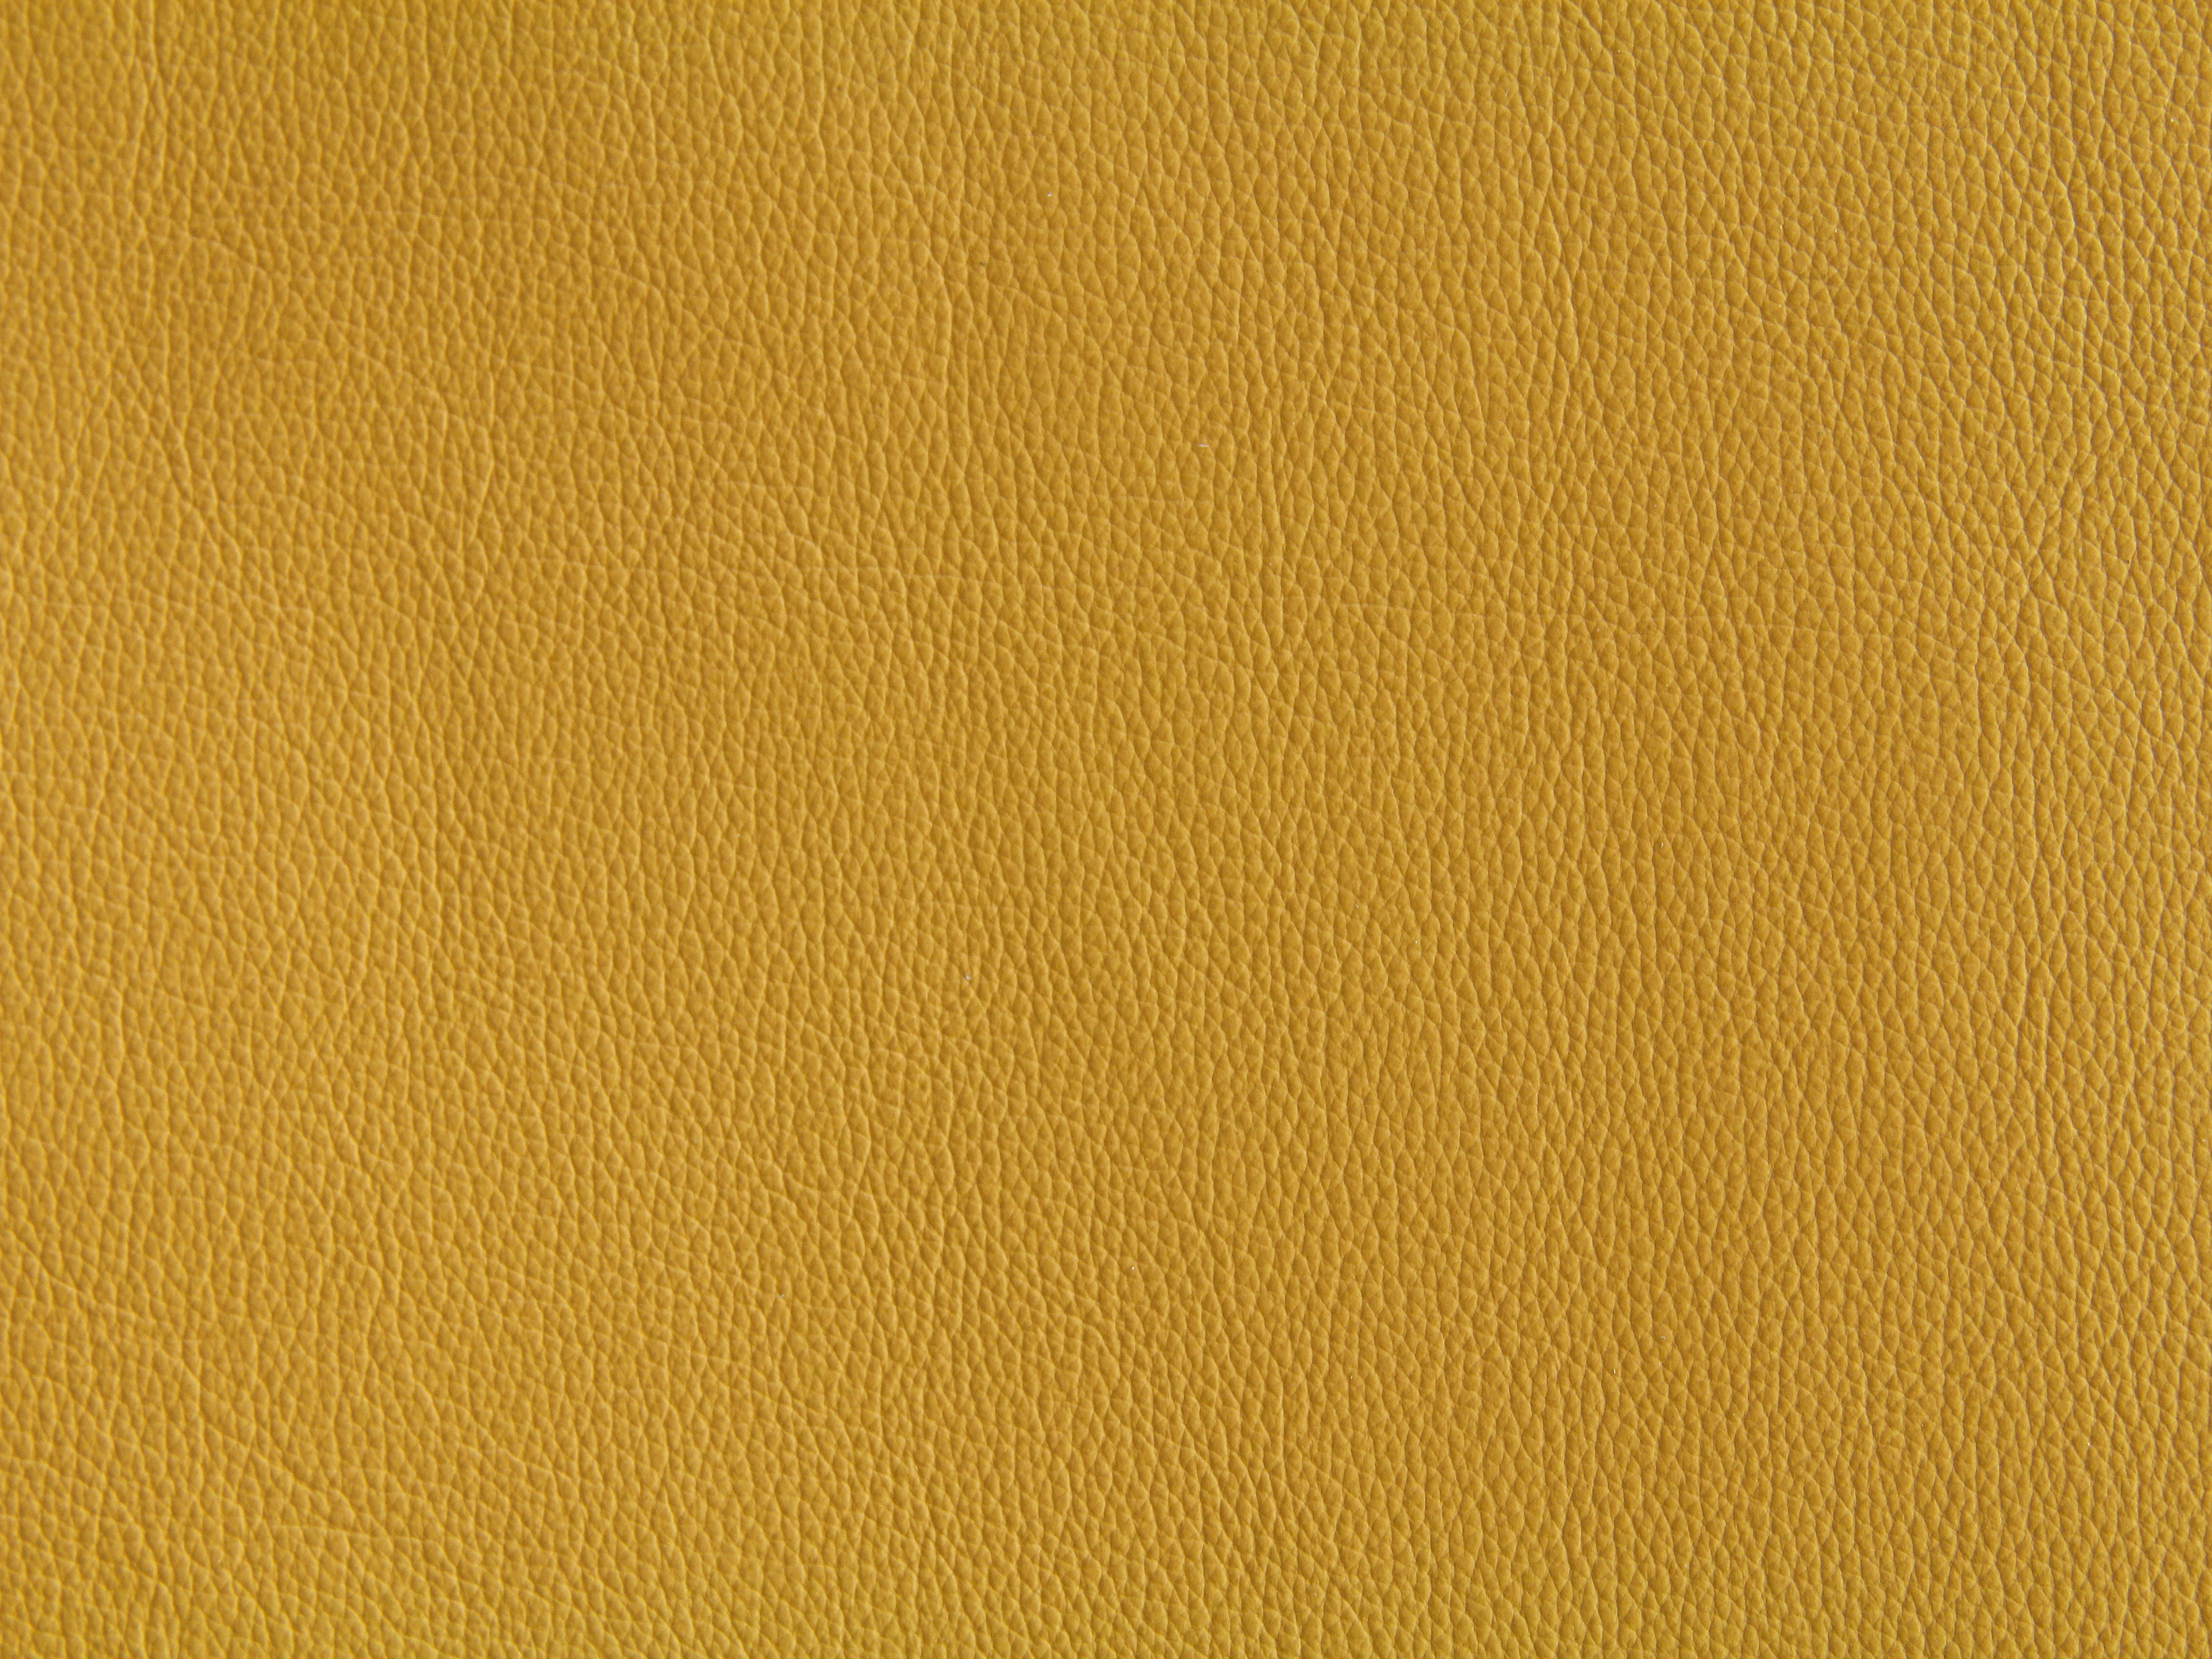 Yellow Leather Texture Wallpaper Fabric Material Design Bright Stock Photo